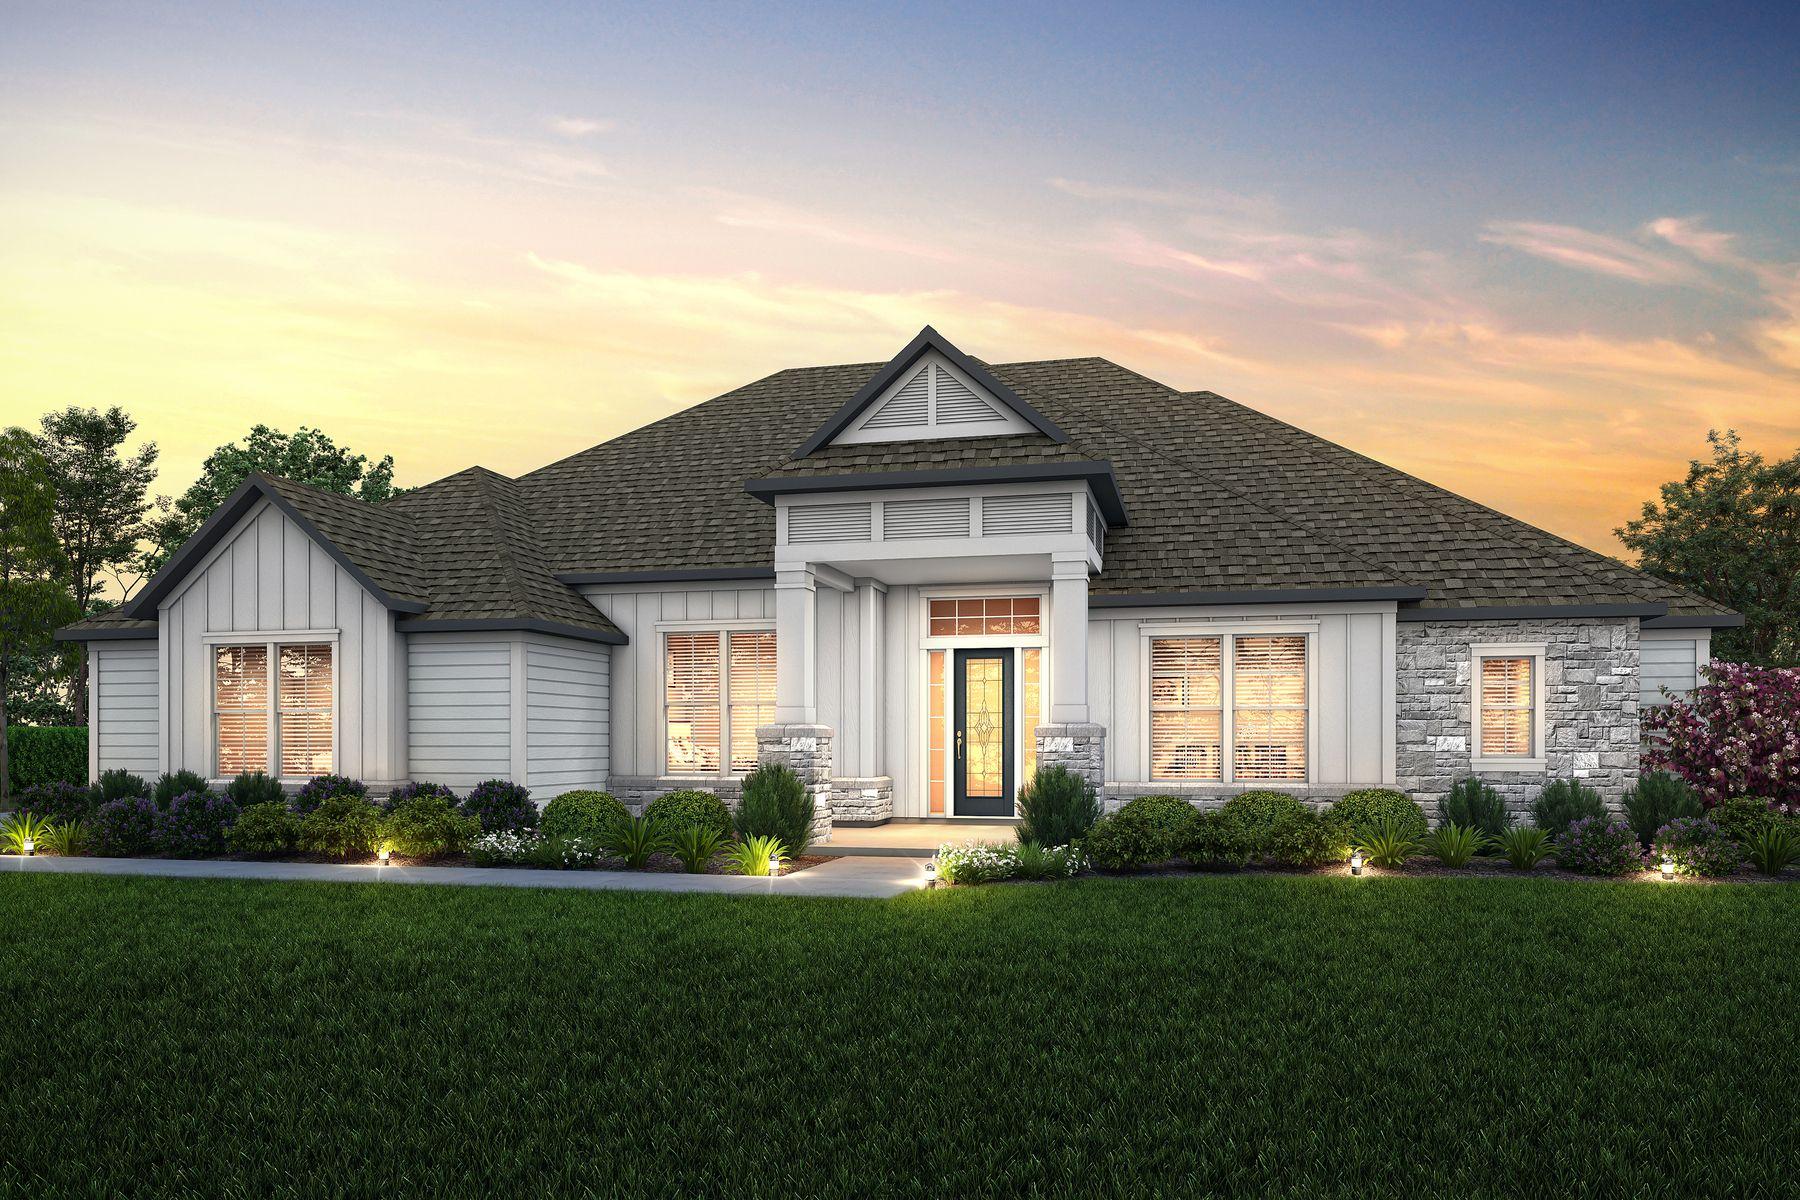 Southern Pines by Terrata Homes:Schedule your tour of the spacious Timberland plan in the Craftsman Collection by Terrata Homes.